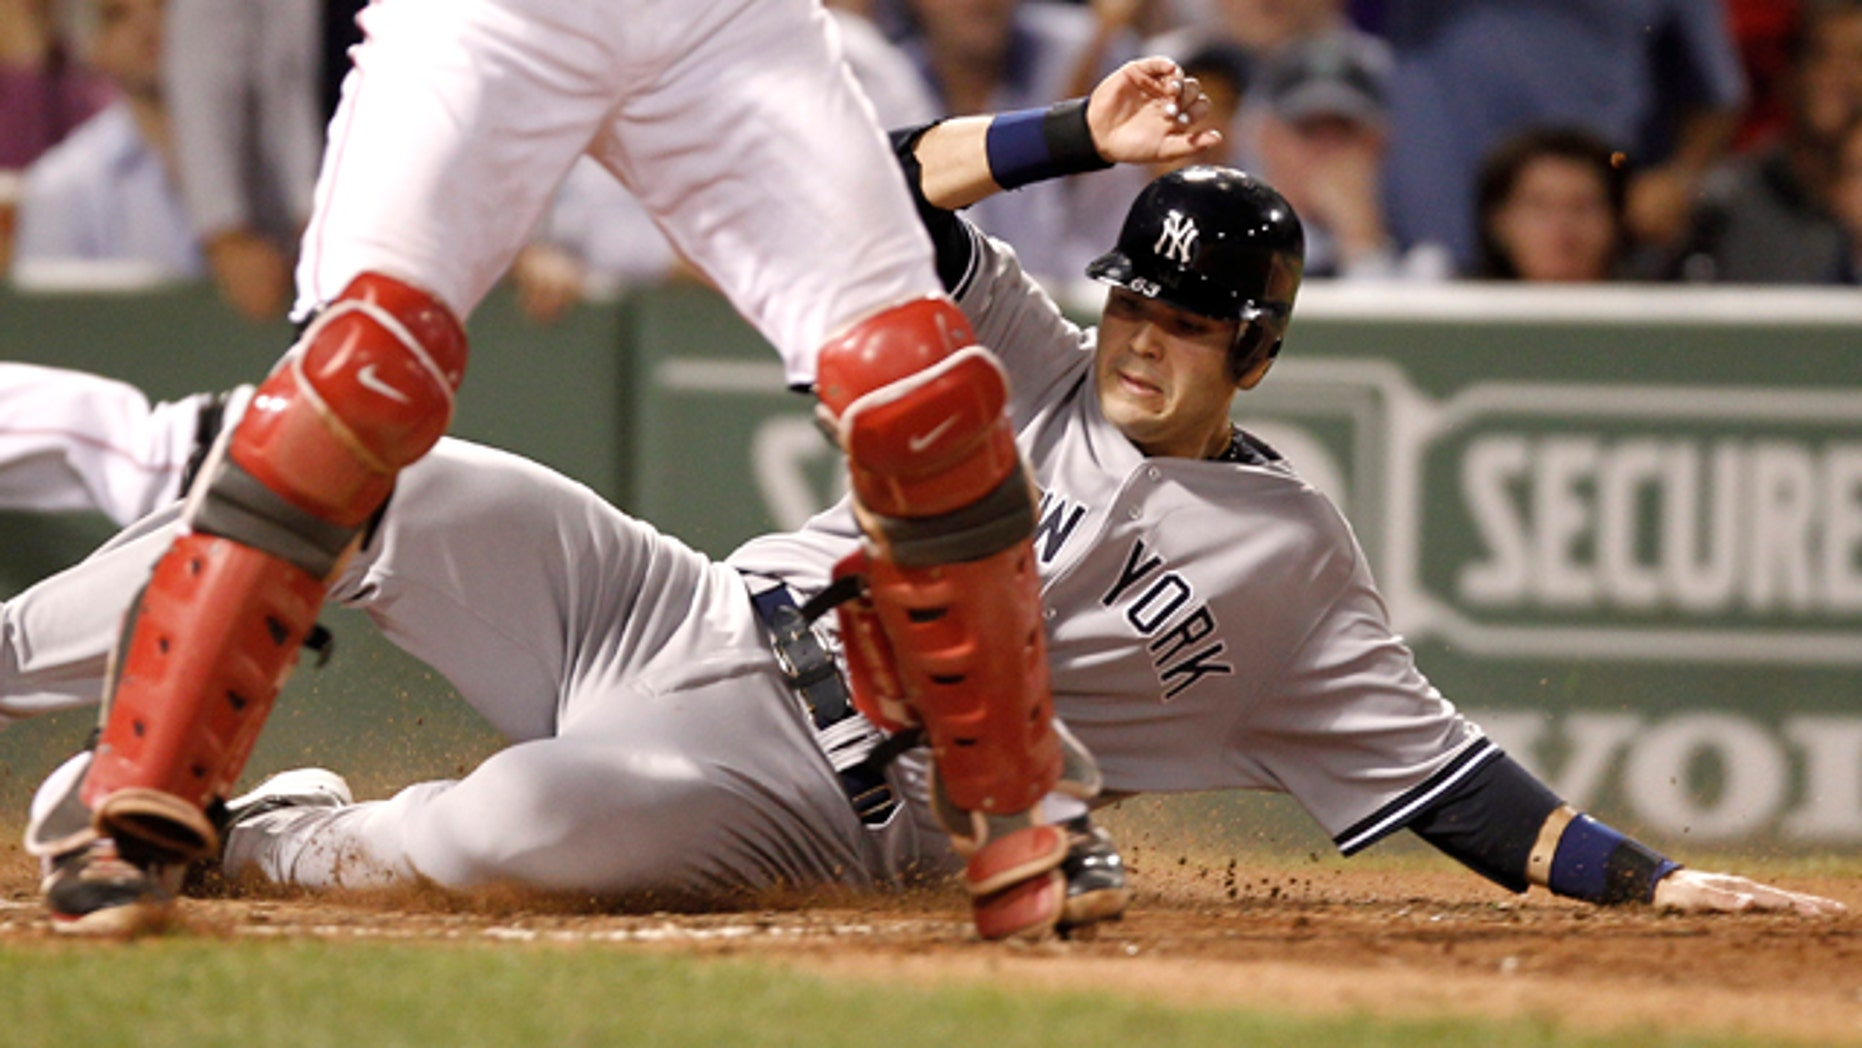 Sept. 1: New York Yankees' Jesus Montero slides home safely behind Boston Red Sox catcher Jarrod Saltalamacchia on a double by Russell Martin during the seventh inning of a baseball game at Fenway Park in Boston. (AP Photo/Winslow Townson)